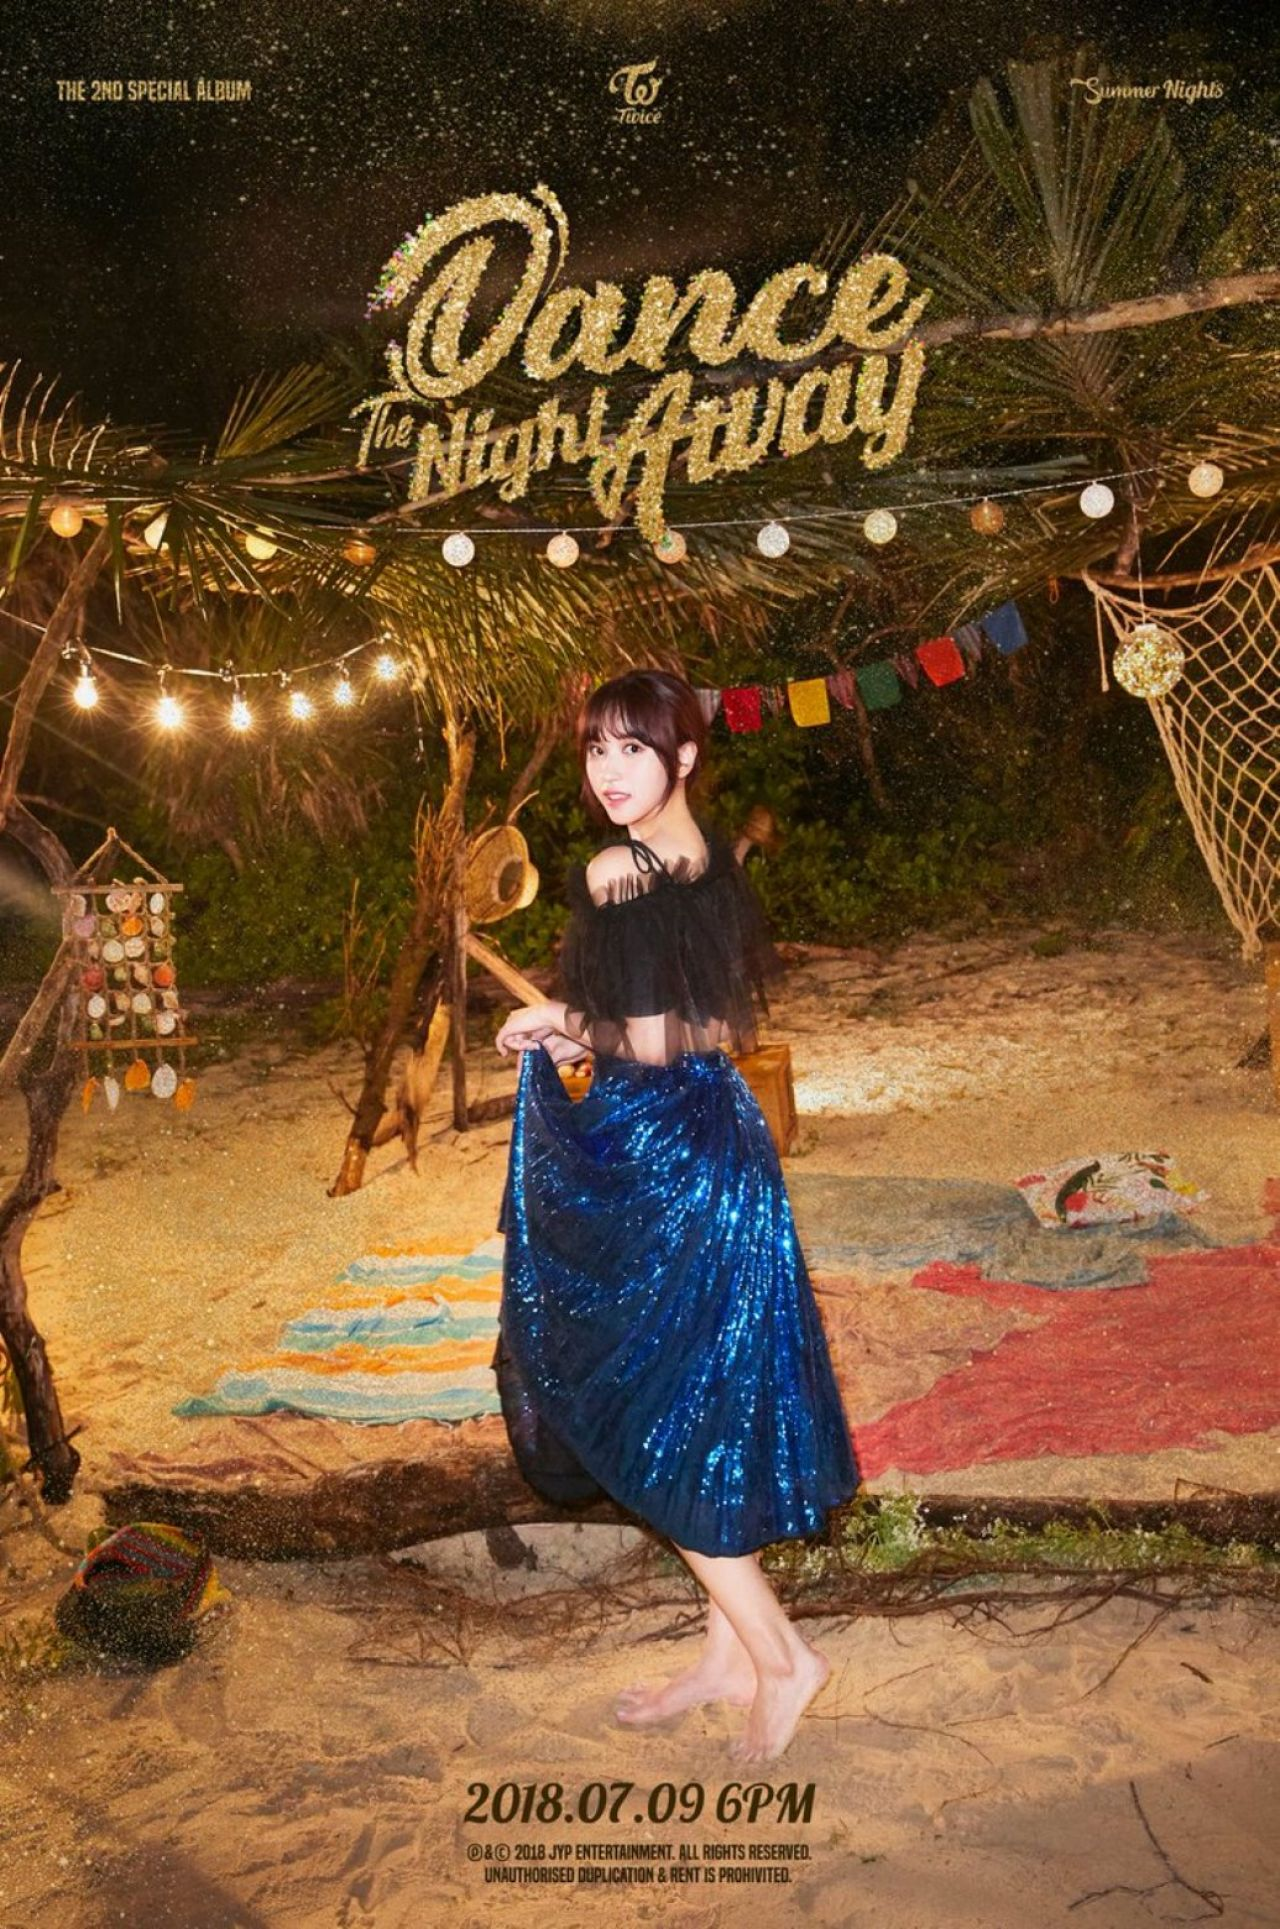 Twice Quot Summer Nights Quot 2nd Special Album Teaser Photos 2018